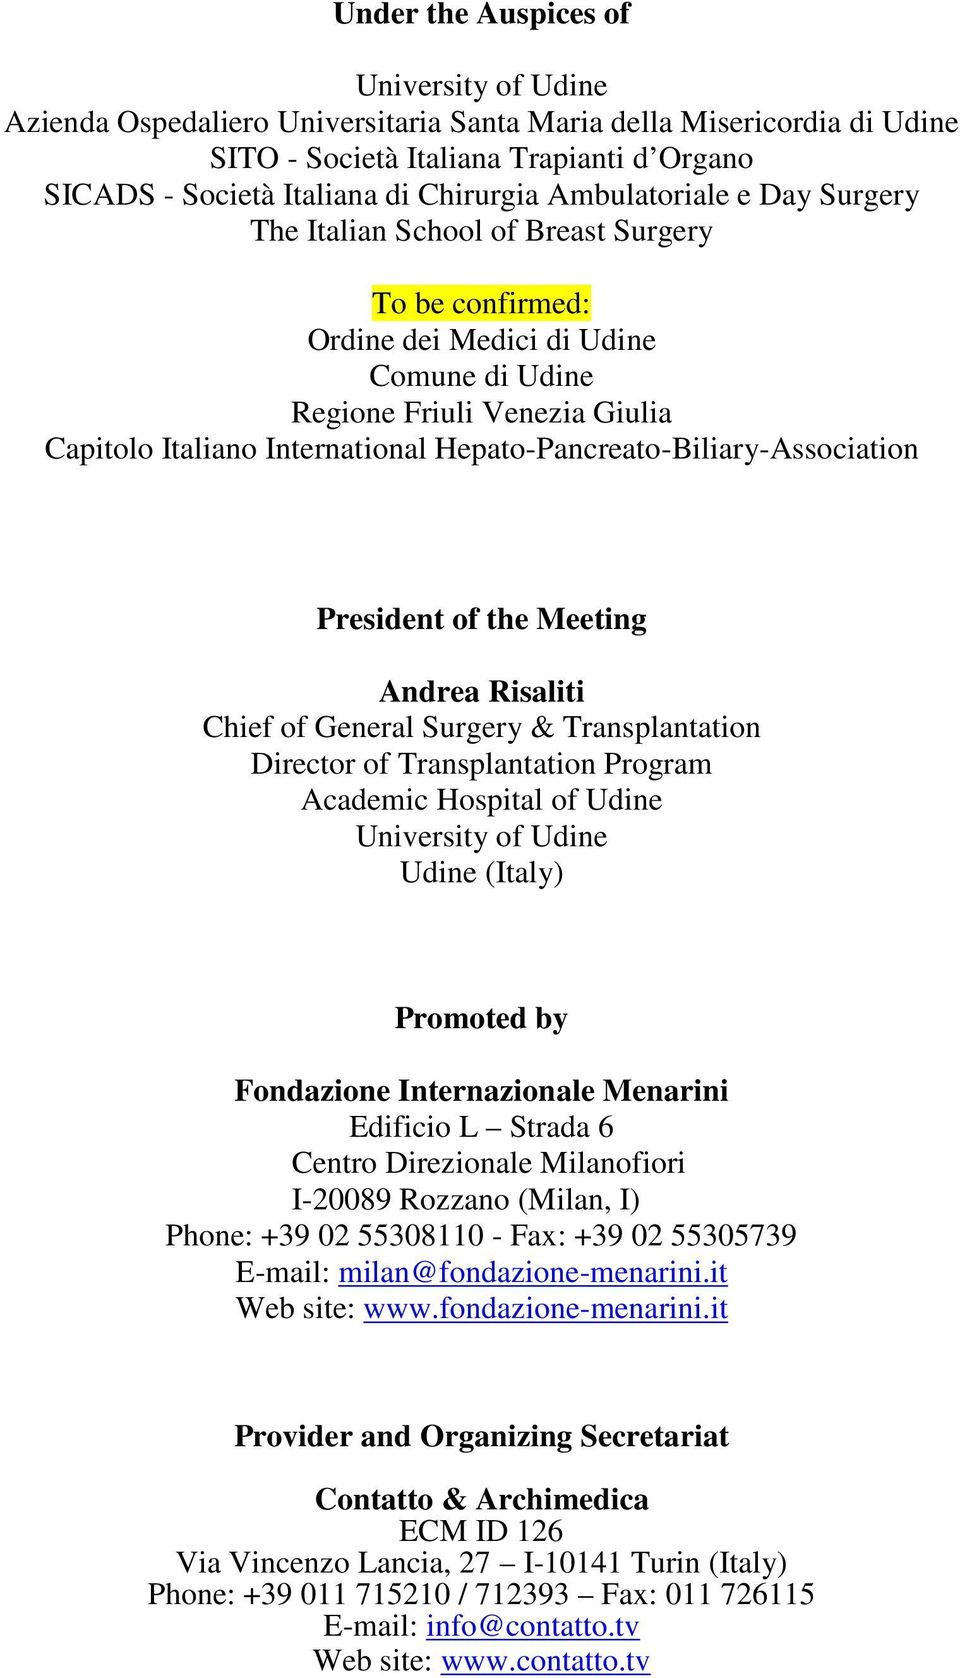 Hepato-Pancreato-Biliary-Association President of the Meeting Andrea Risaliti Chief of General Surgery & Transplantation Director of Transplantation Program Academic Hospital of Udine University of